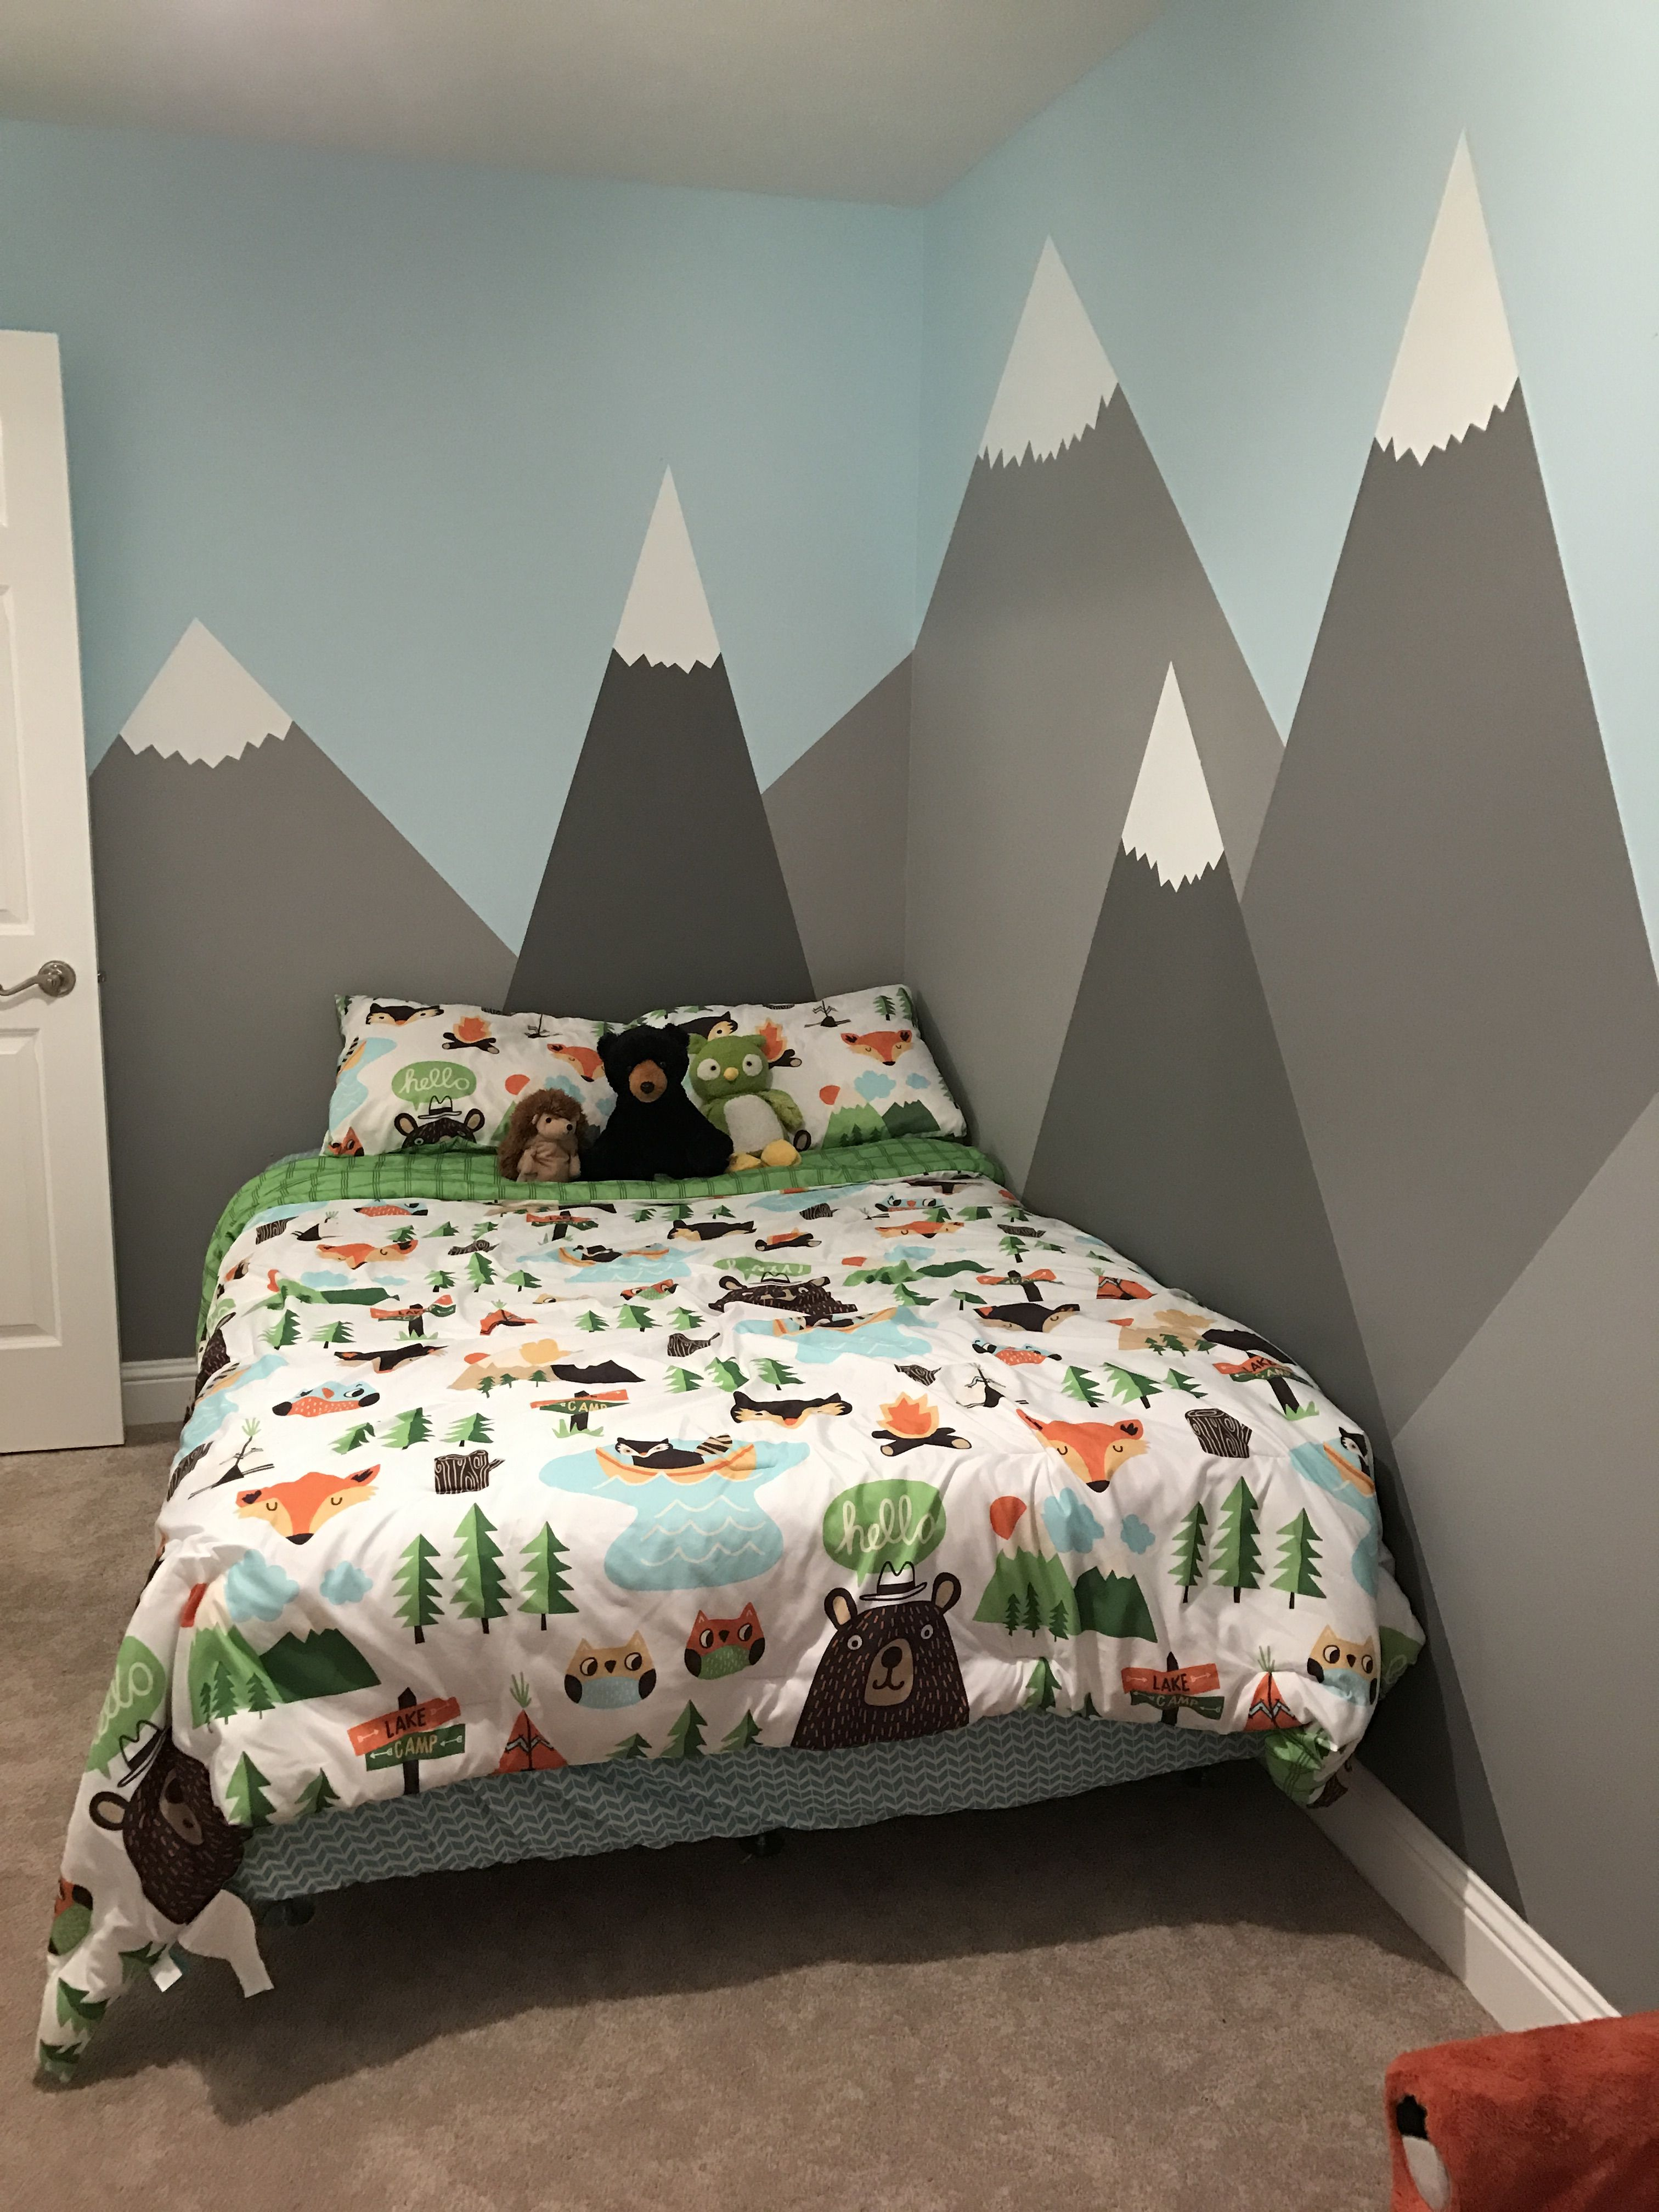 My Son Kylers Room Via Ktgardner Mountains Painted On The Walls For A Woodland Themed Bedroom Toddler Boy Comforter Is Pillow Fort By Target